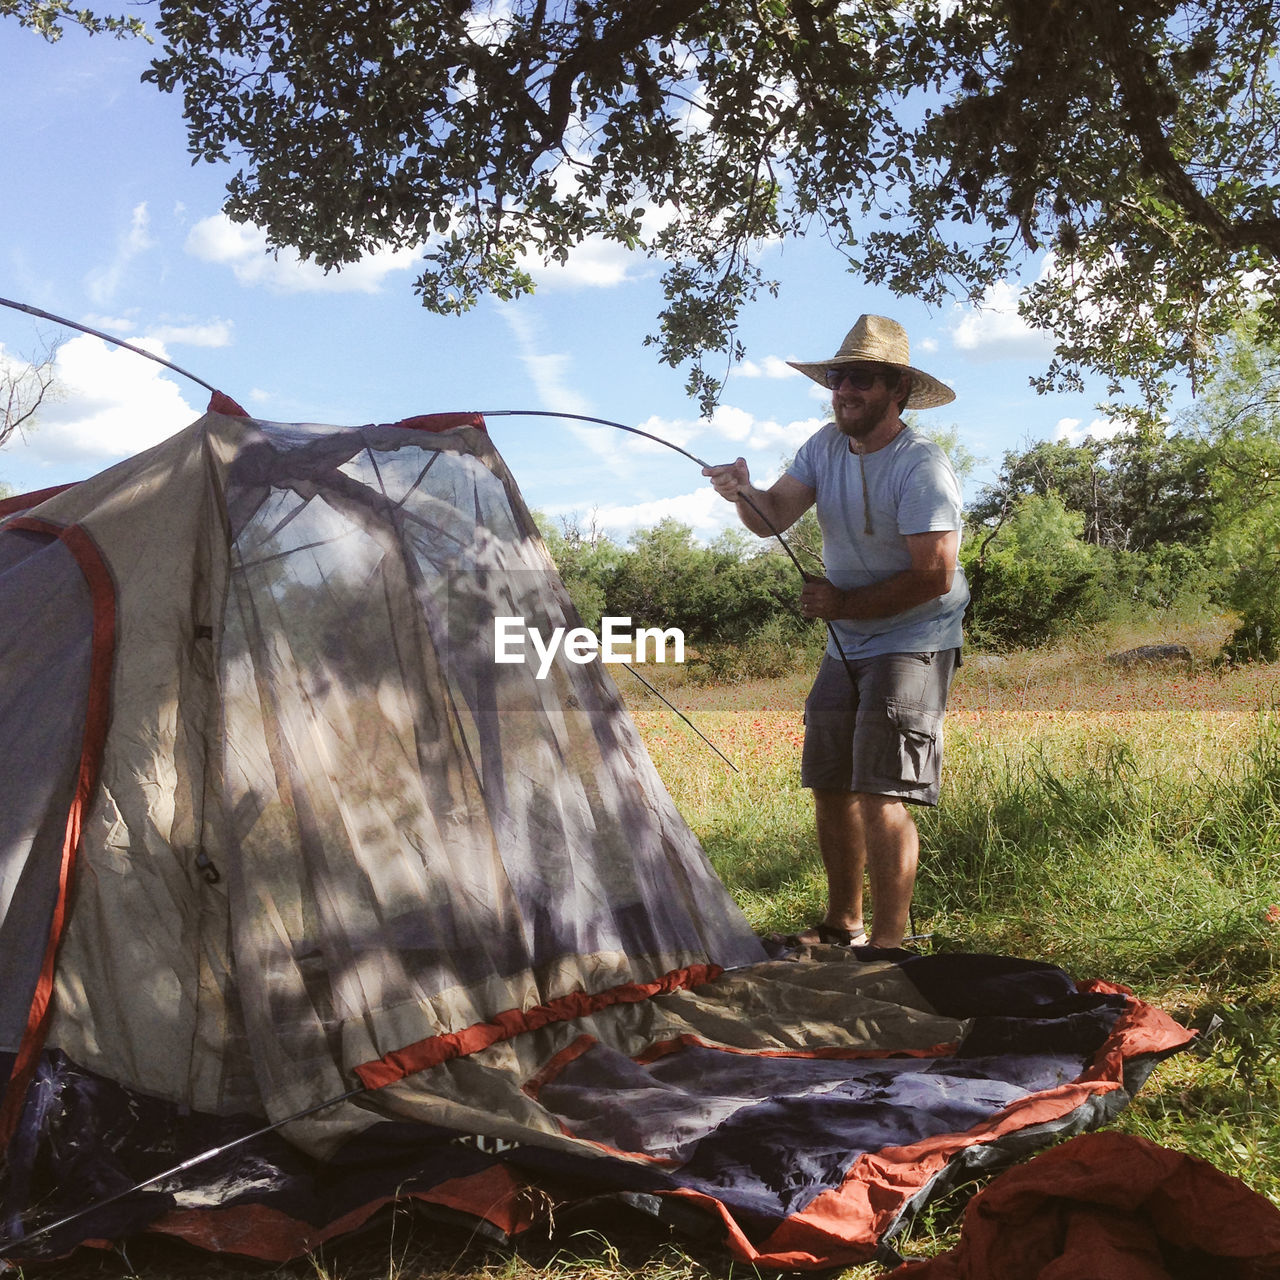 Man Wearing Hat While Putting Tent On Grassy Field